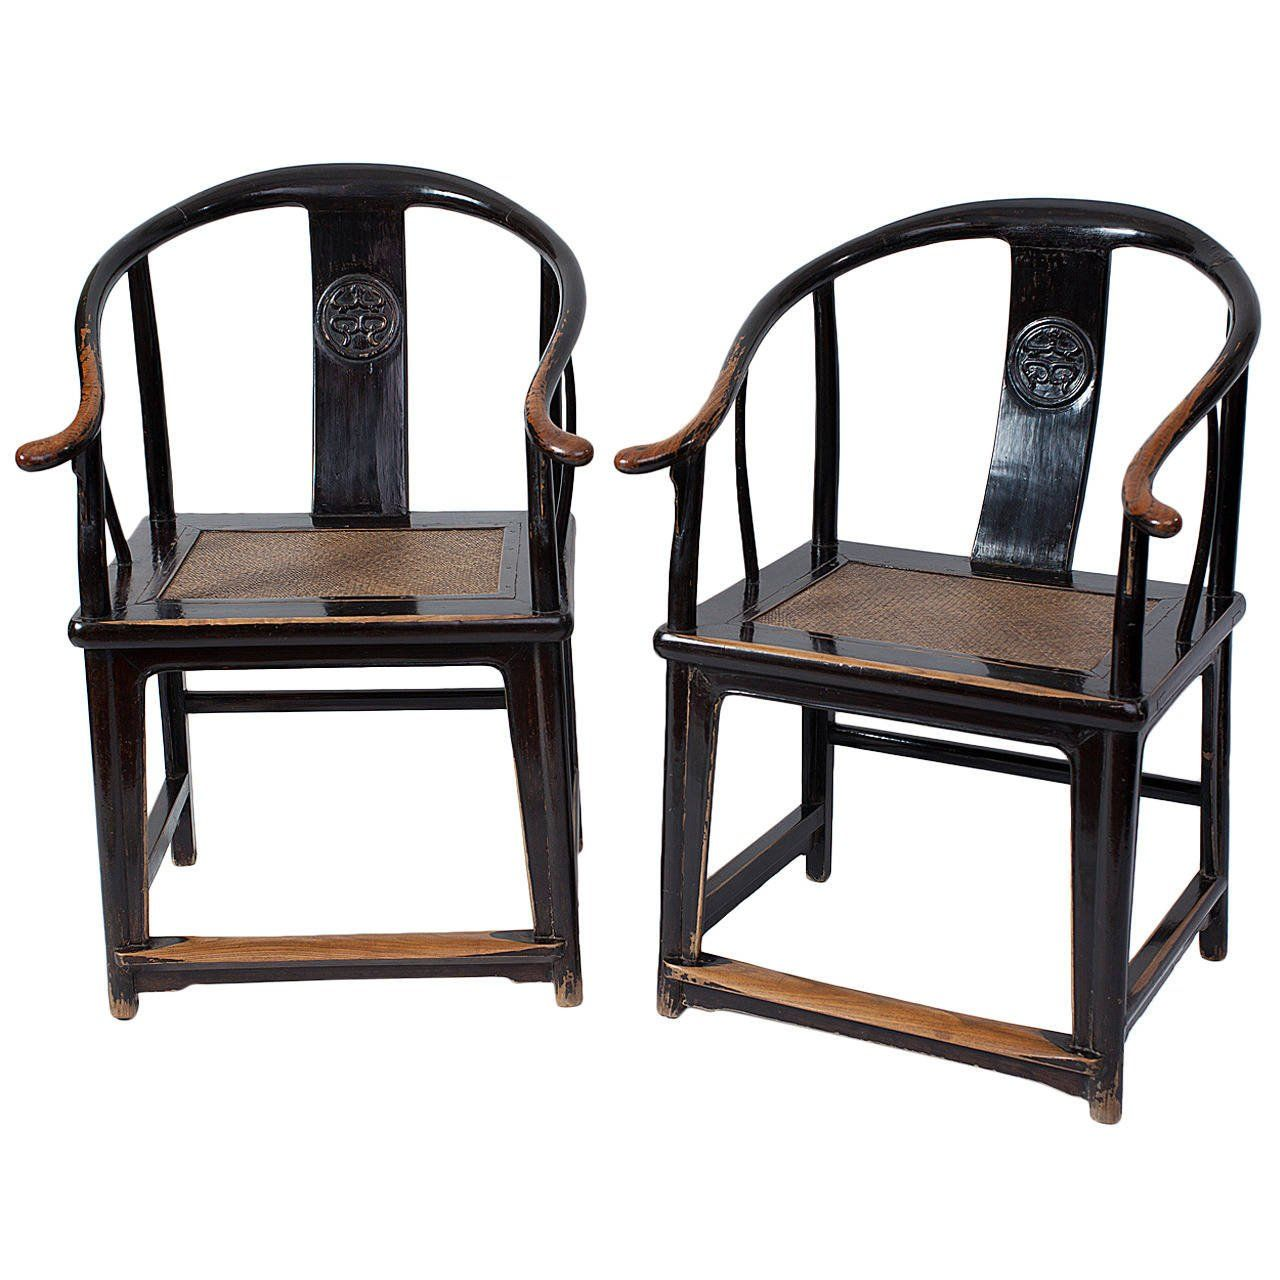 Excellent Pair Of 17th Century Ming Dynasty Chinese Horseshoe Round Back  Chairs